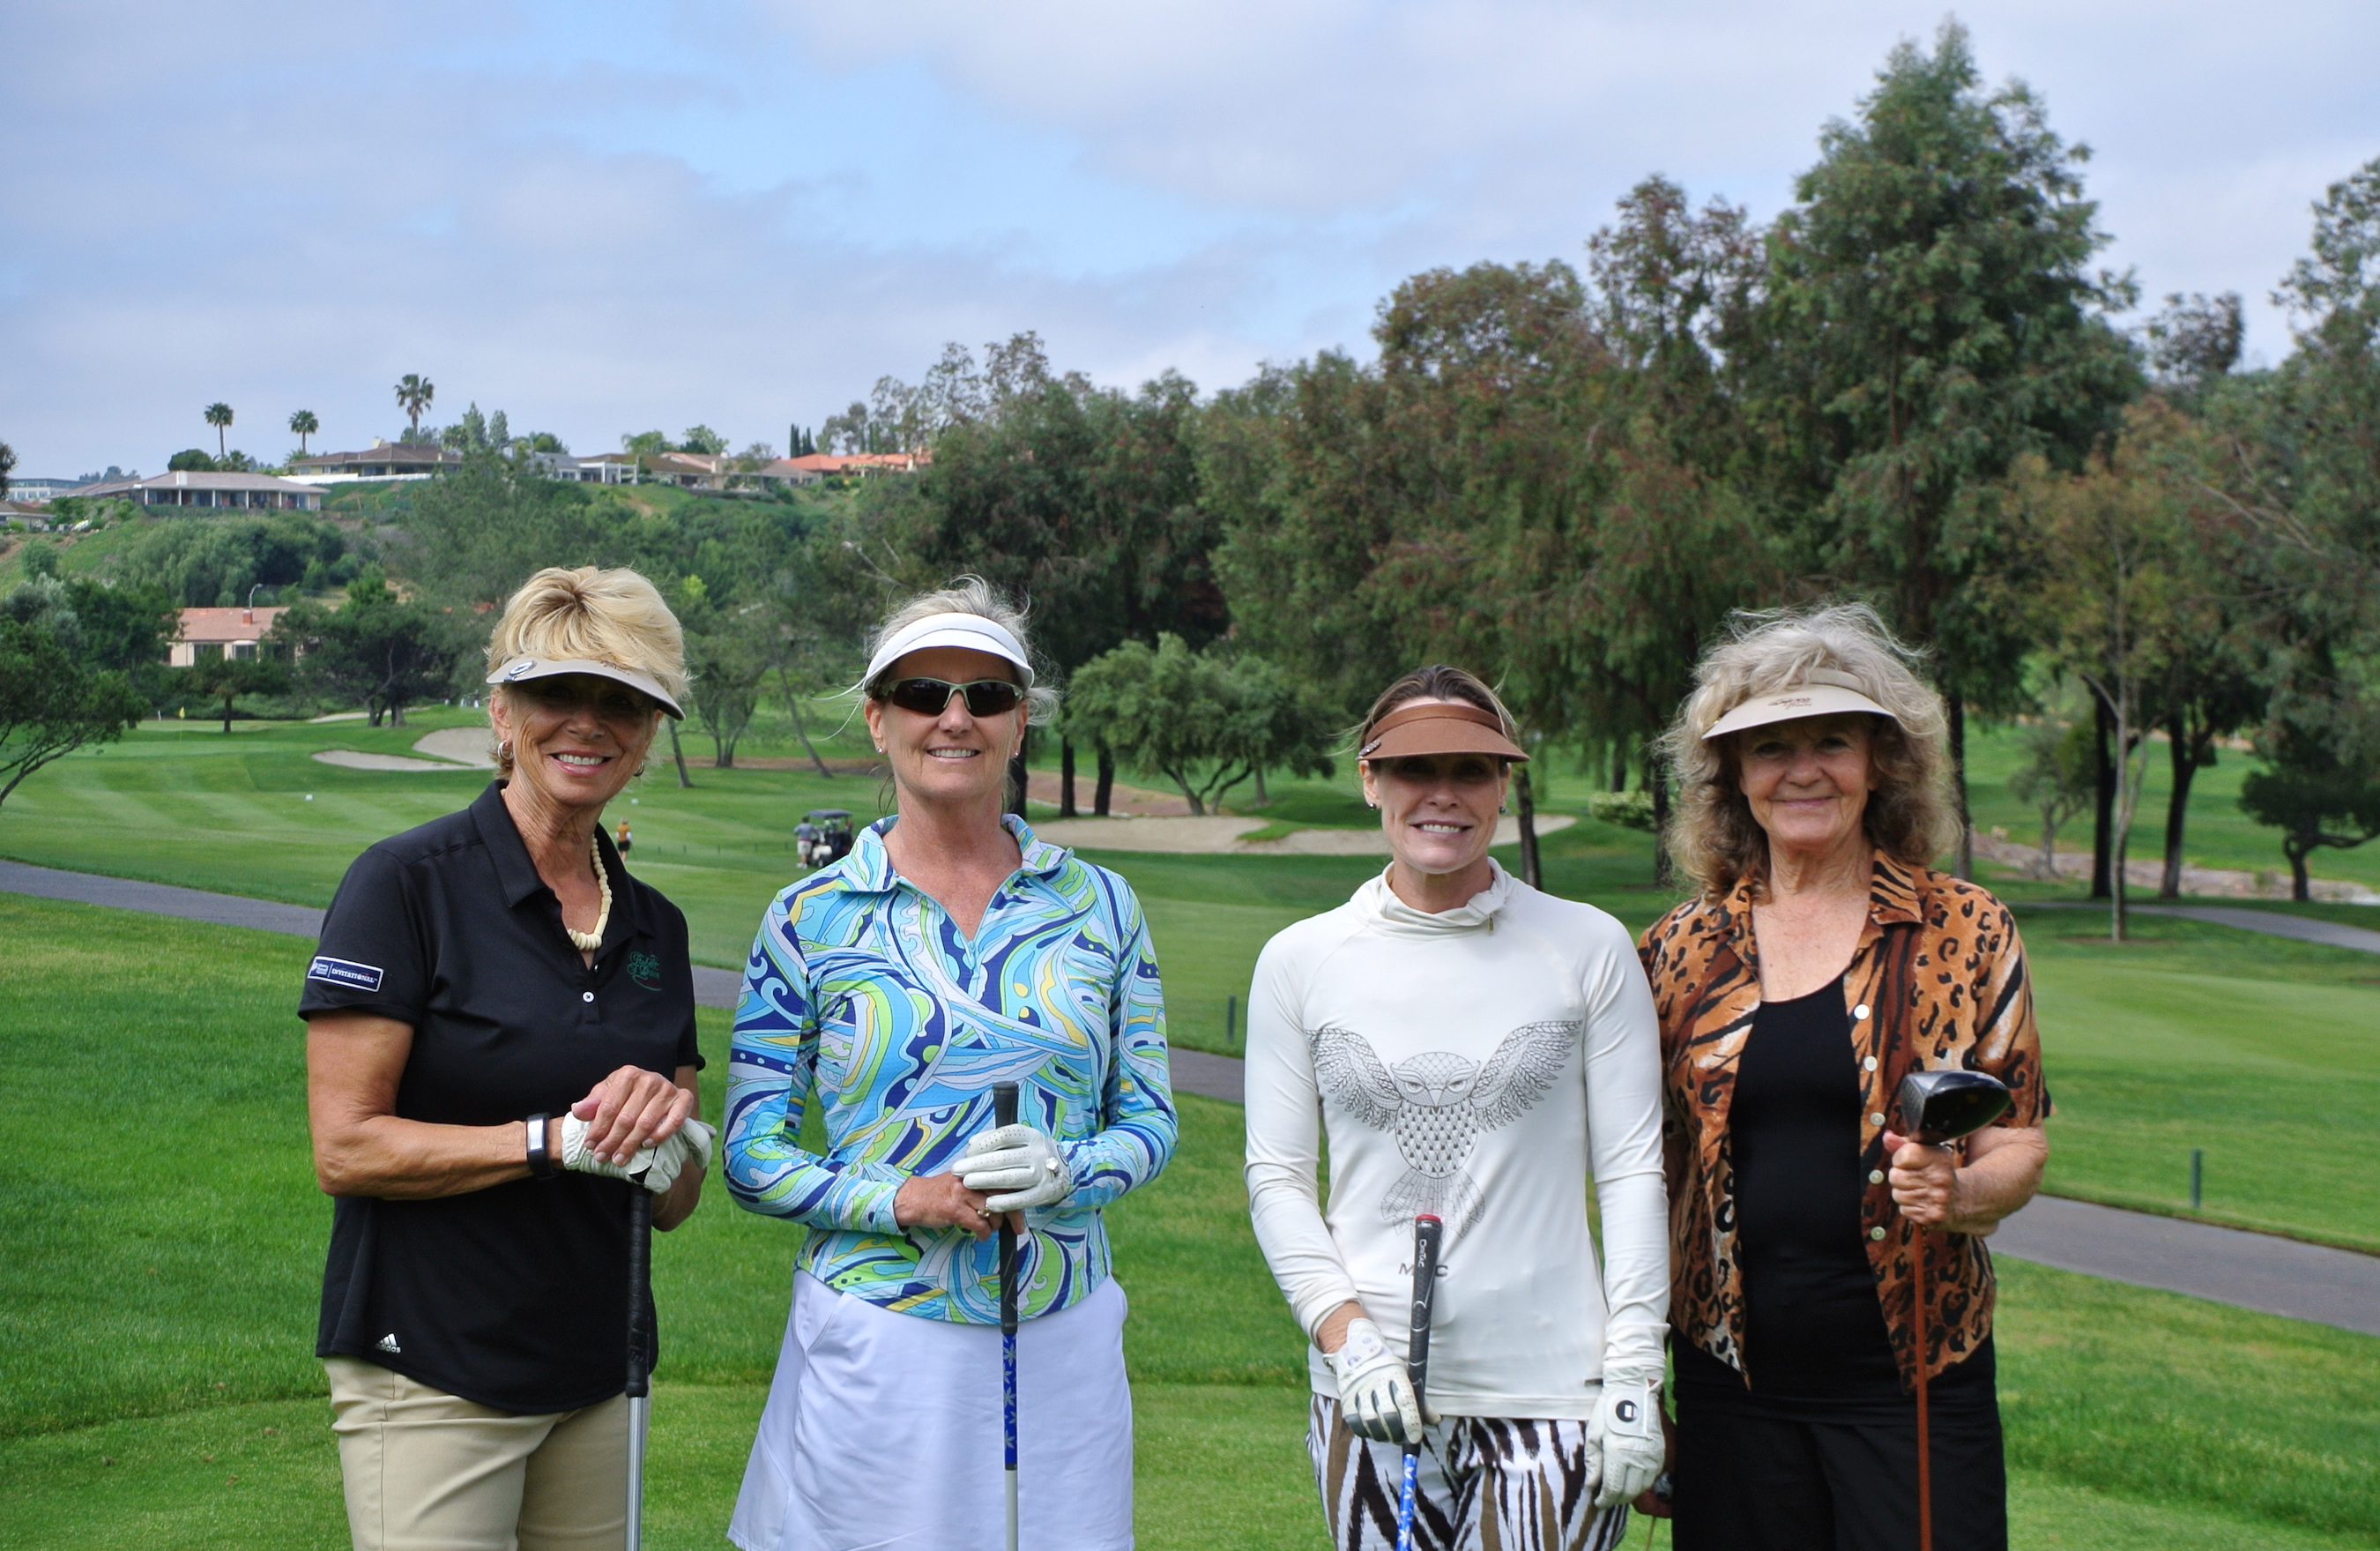 Barb Kleber, Susan Boeshart, Elna Eriksen and Betty King enjoy the sunny day at the Invitational